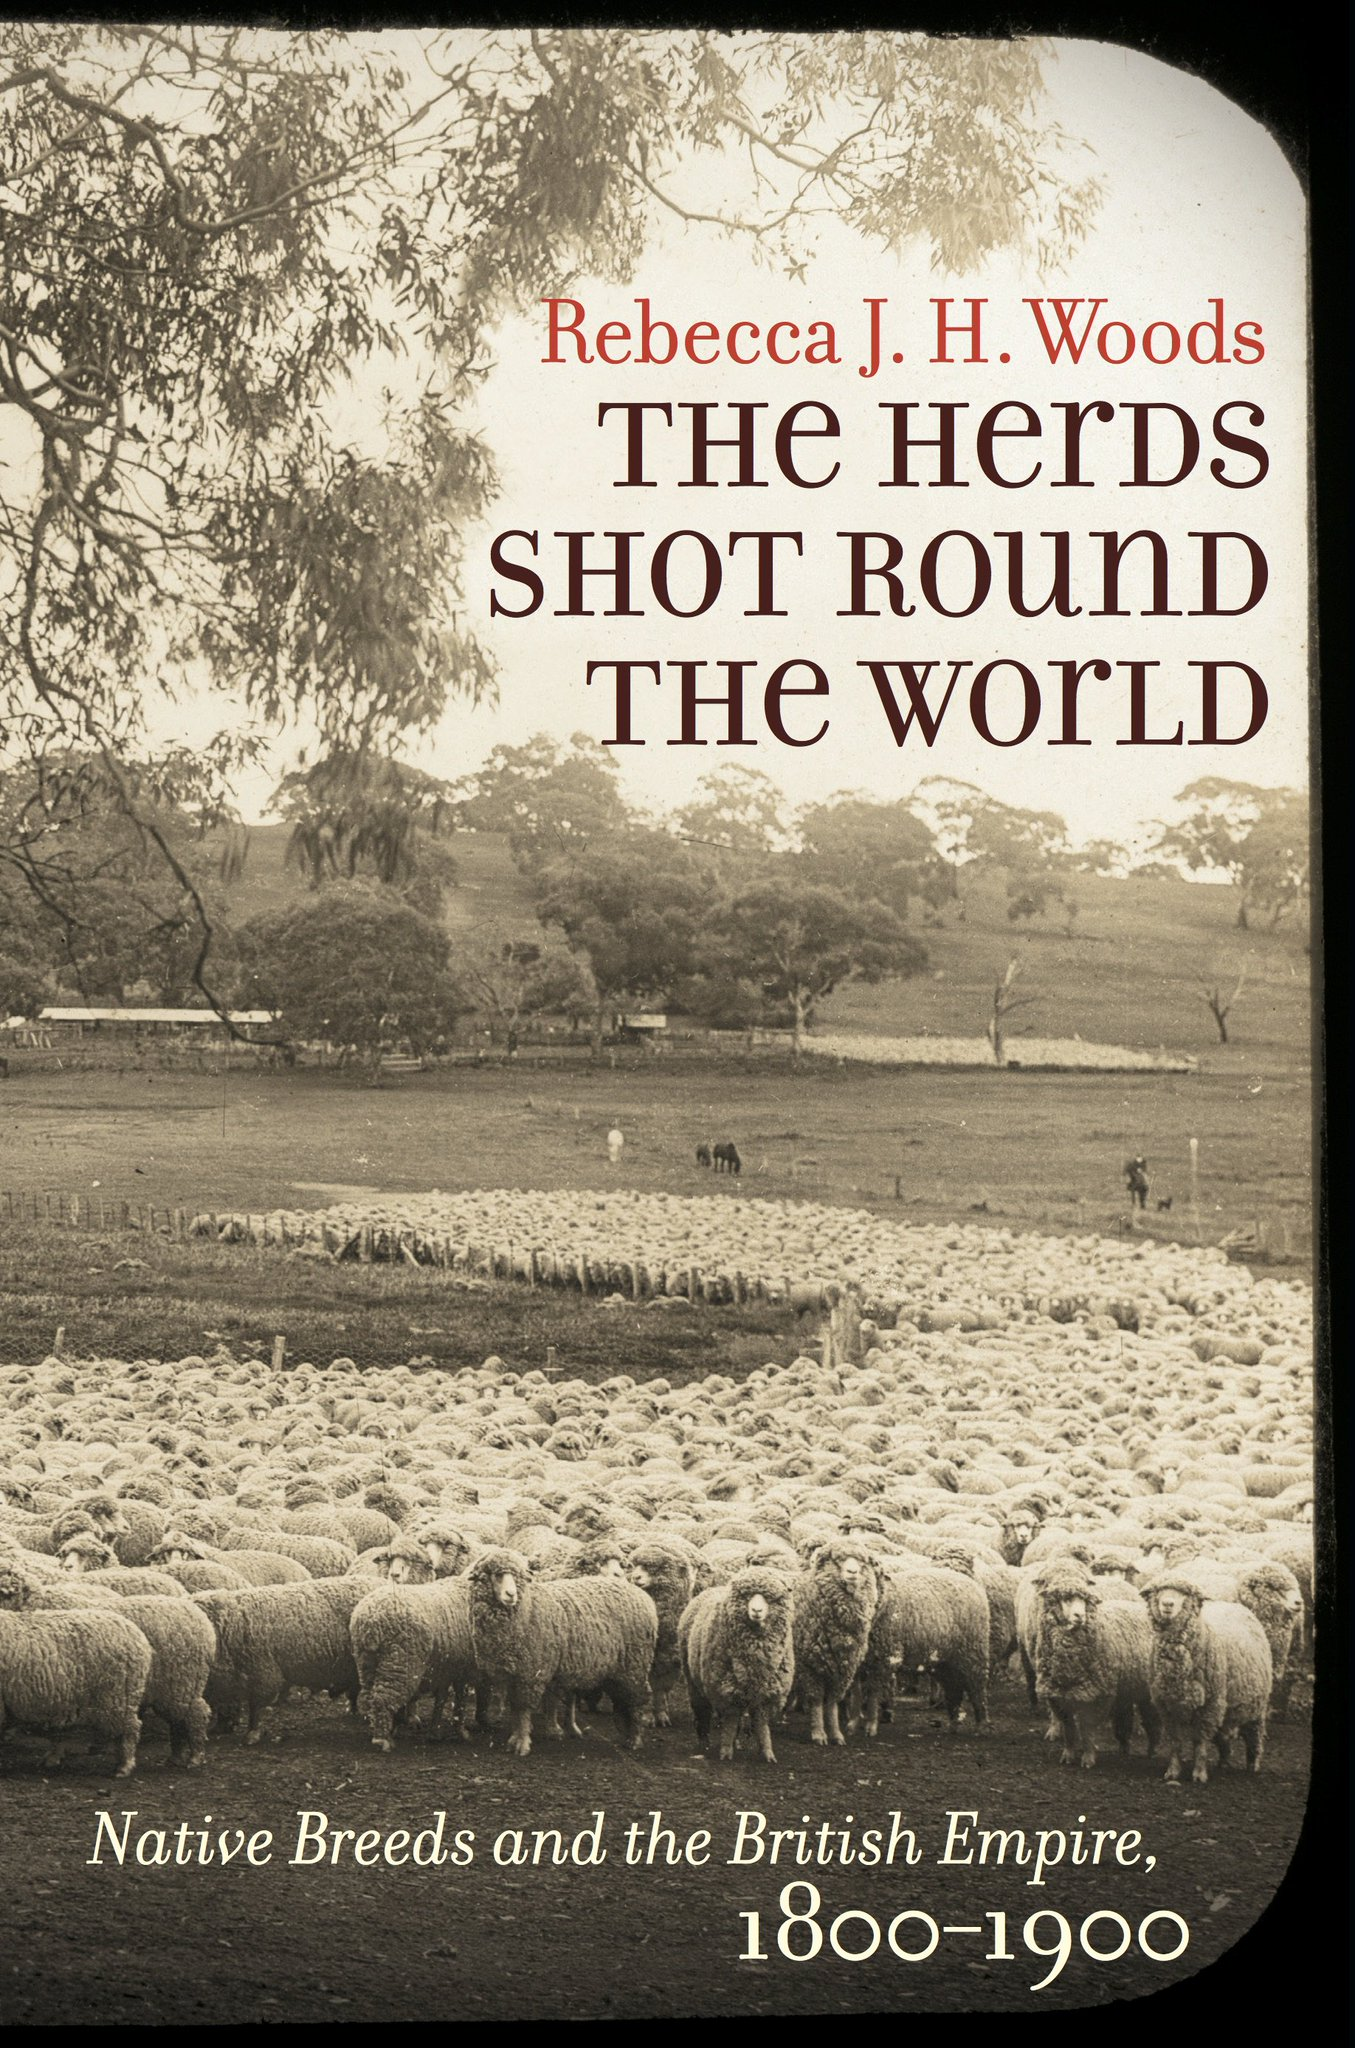 My new book, The Herds Shot Round the World, is available on Amazon for pre-order! https://t.co/4usQKo3Xoj https://t.co/TCa2OP7QbI